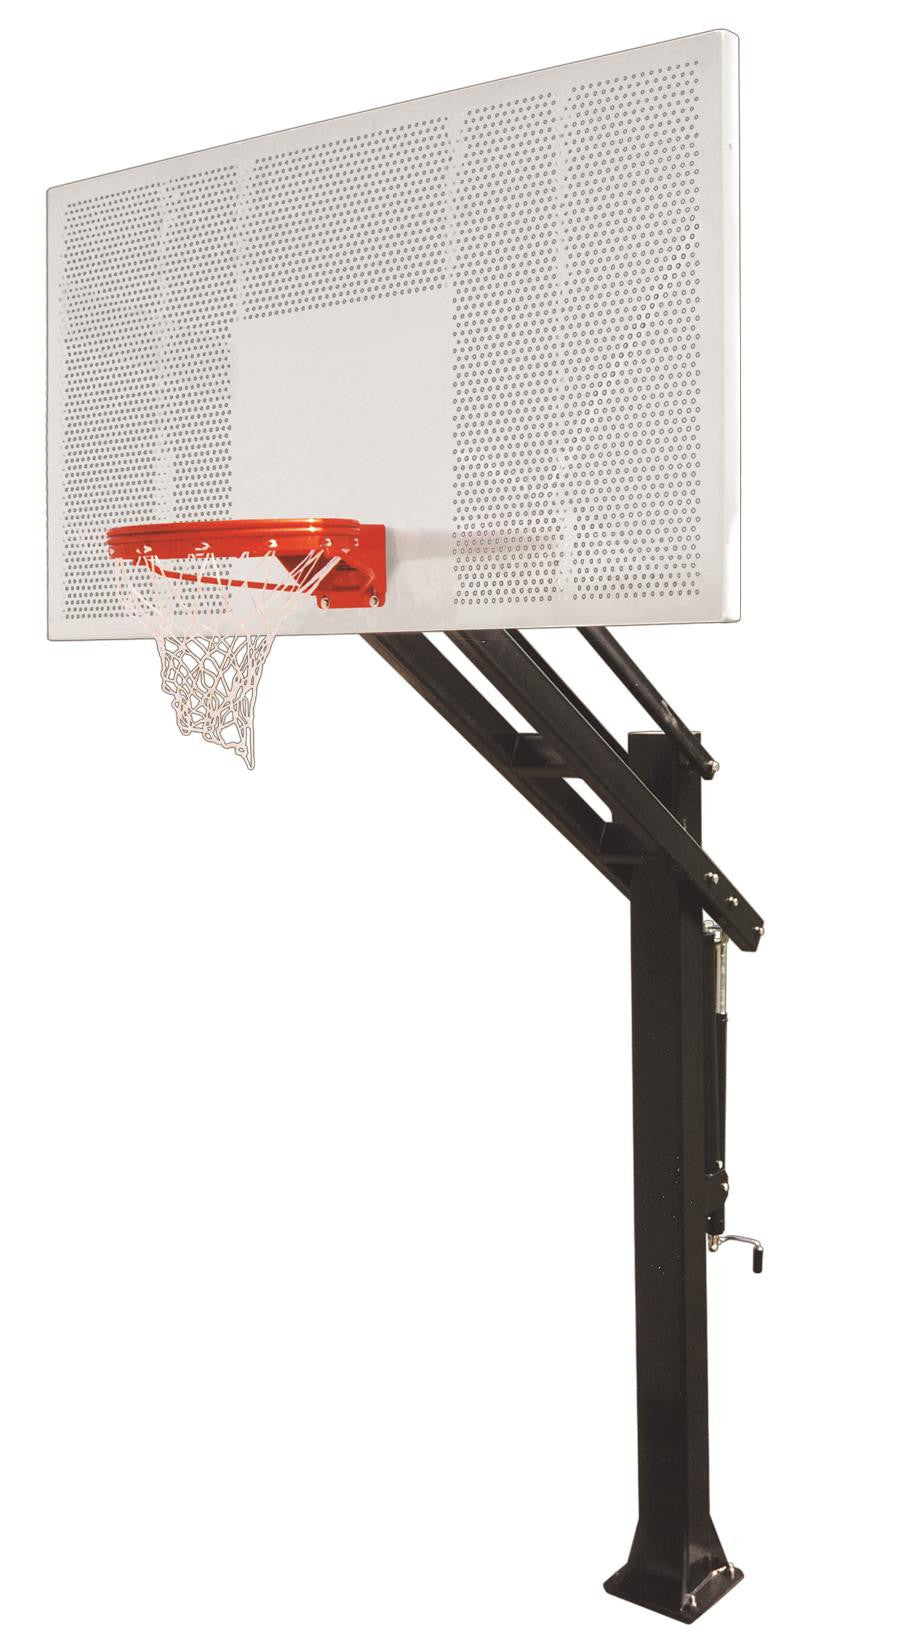 First Team Titan Intensity In Ground Outdoor Adjustable Basketball Hoop 72 inch Perforated Aluminum